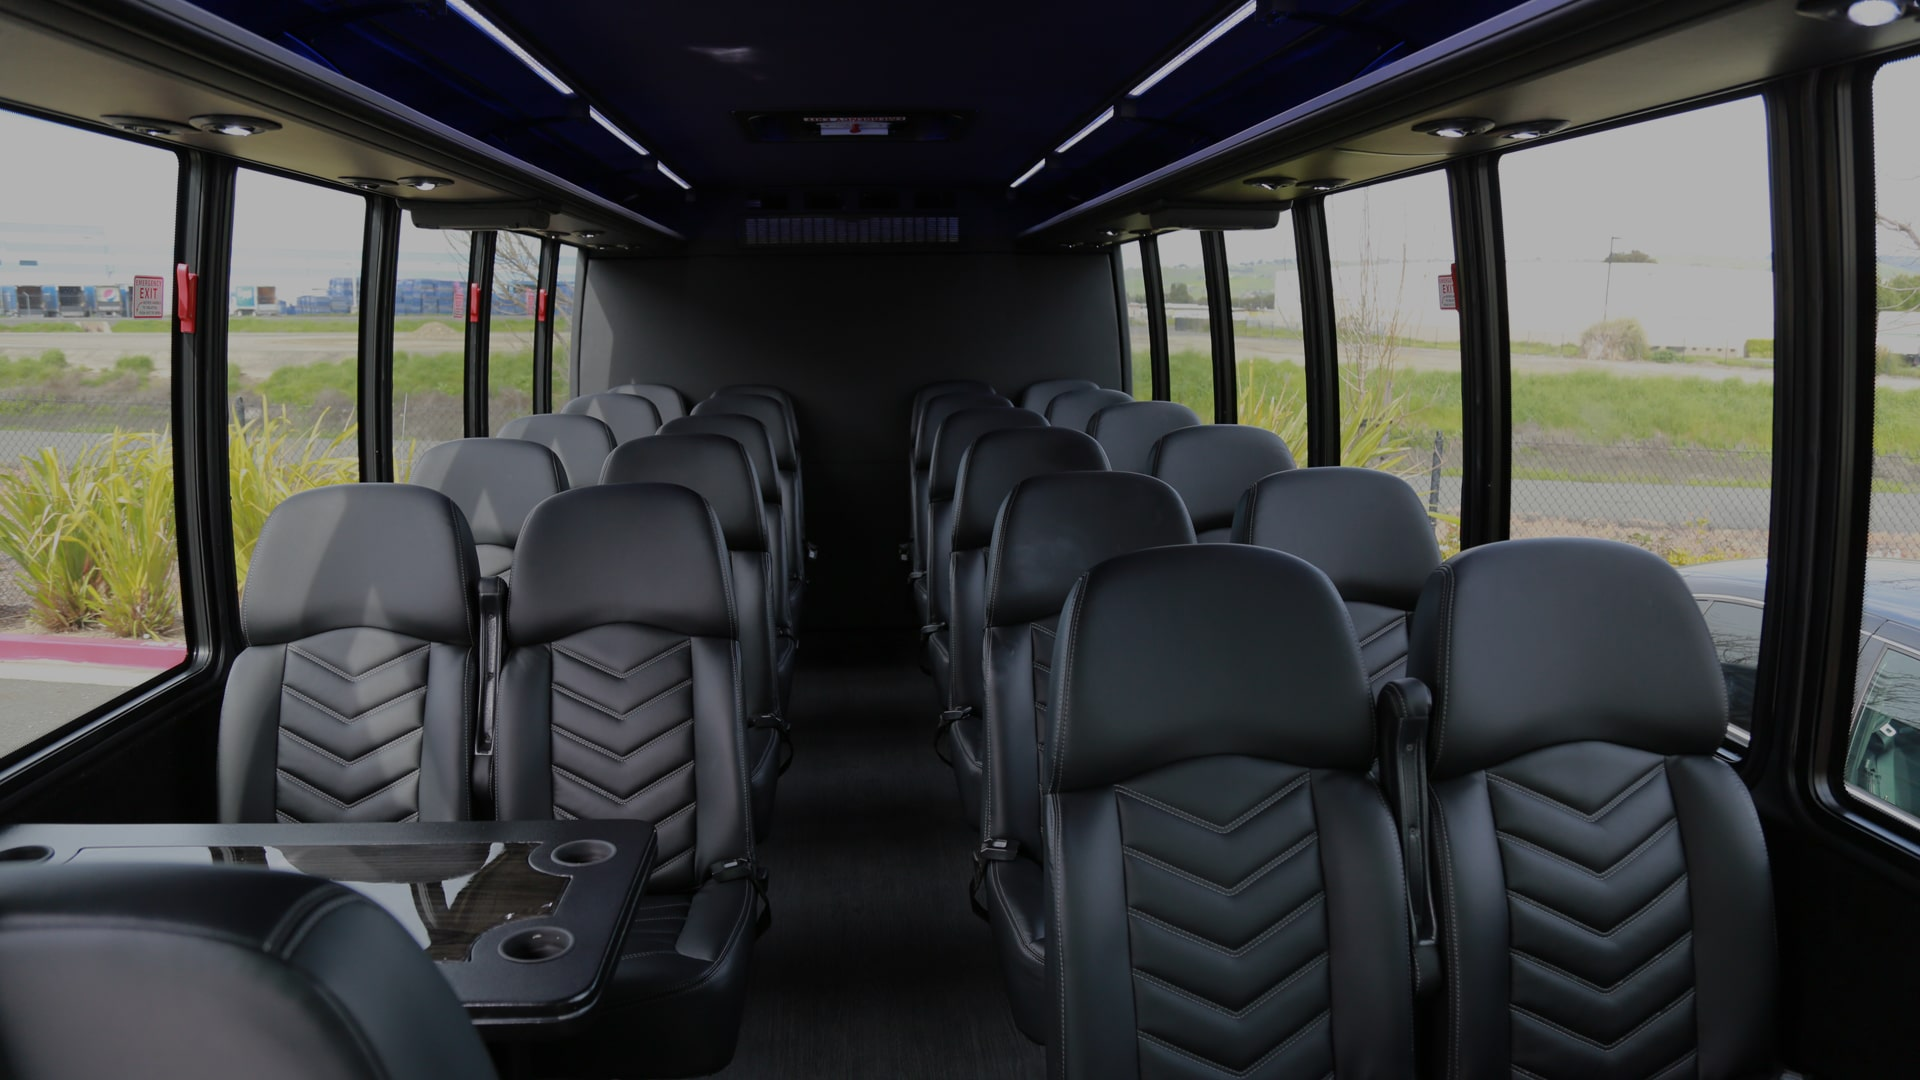 Inner view of the Spacious Limousine Bus